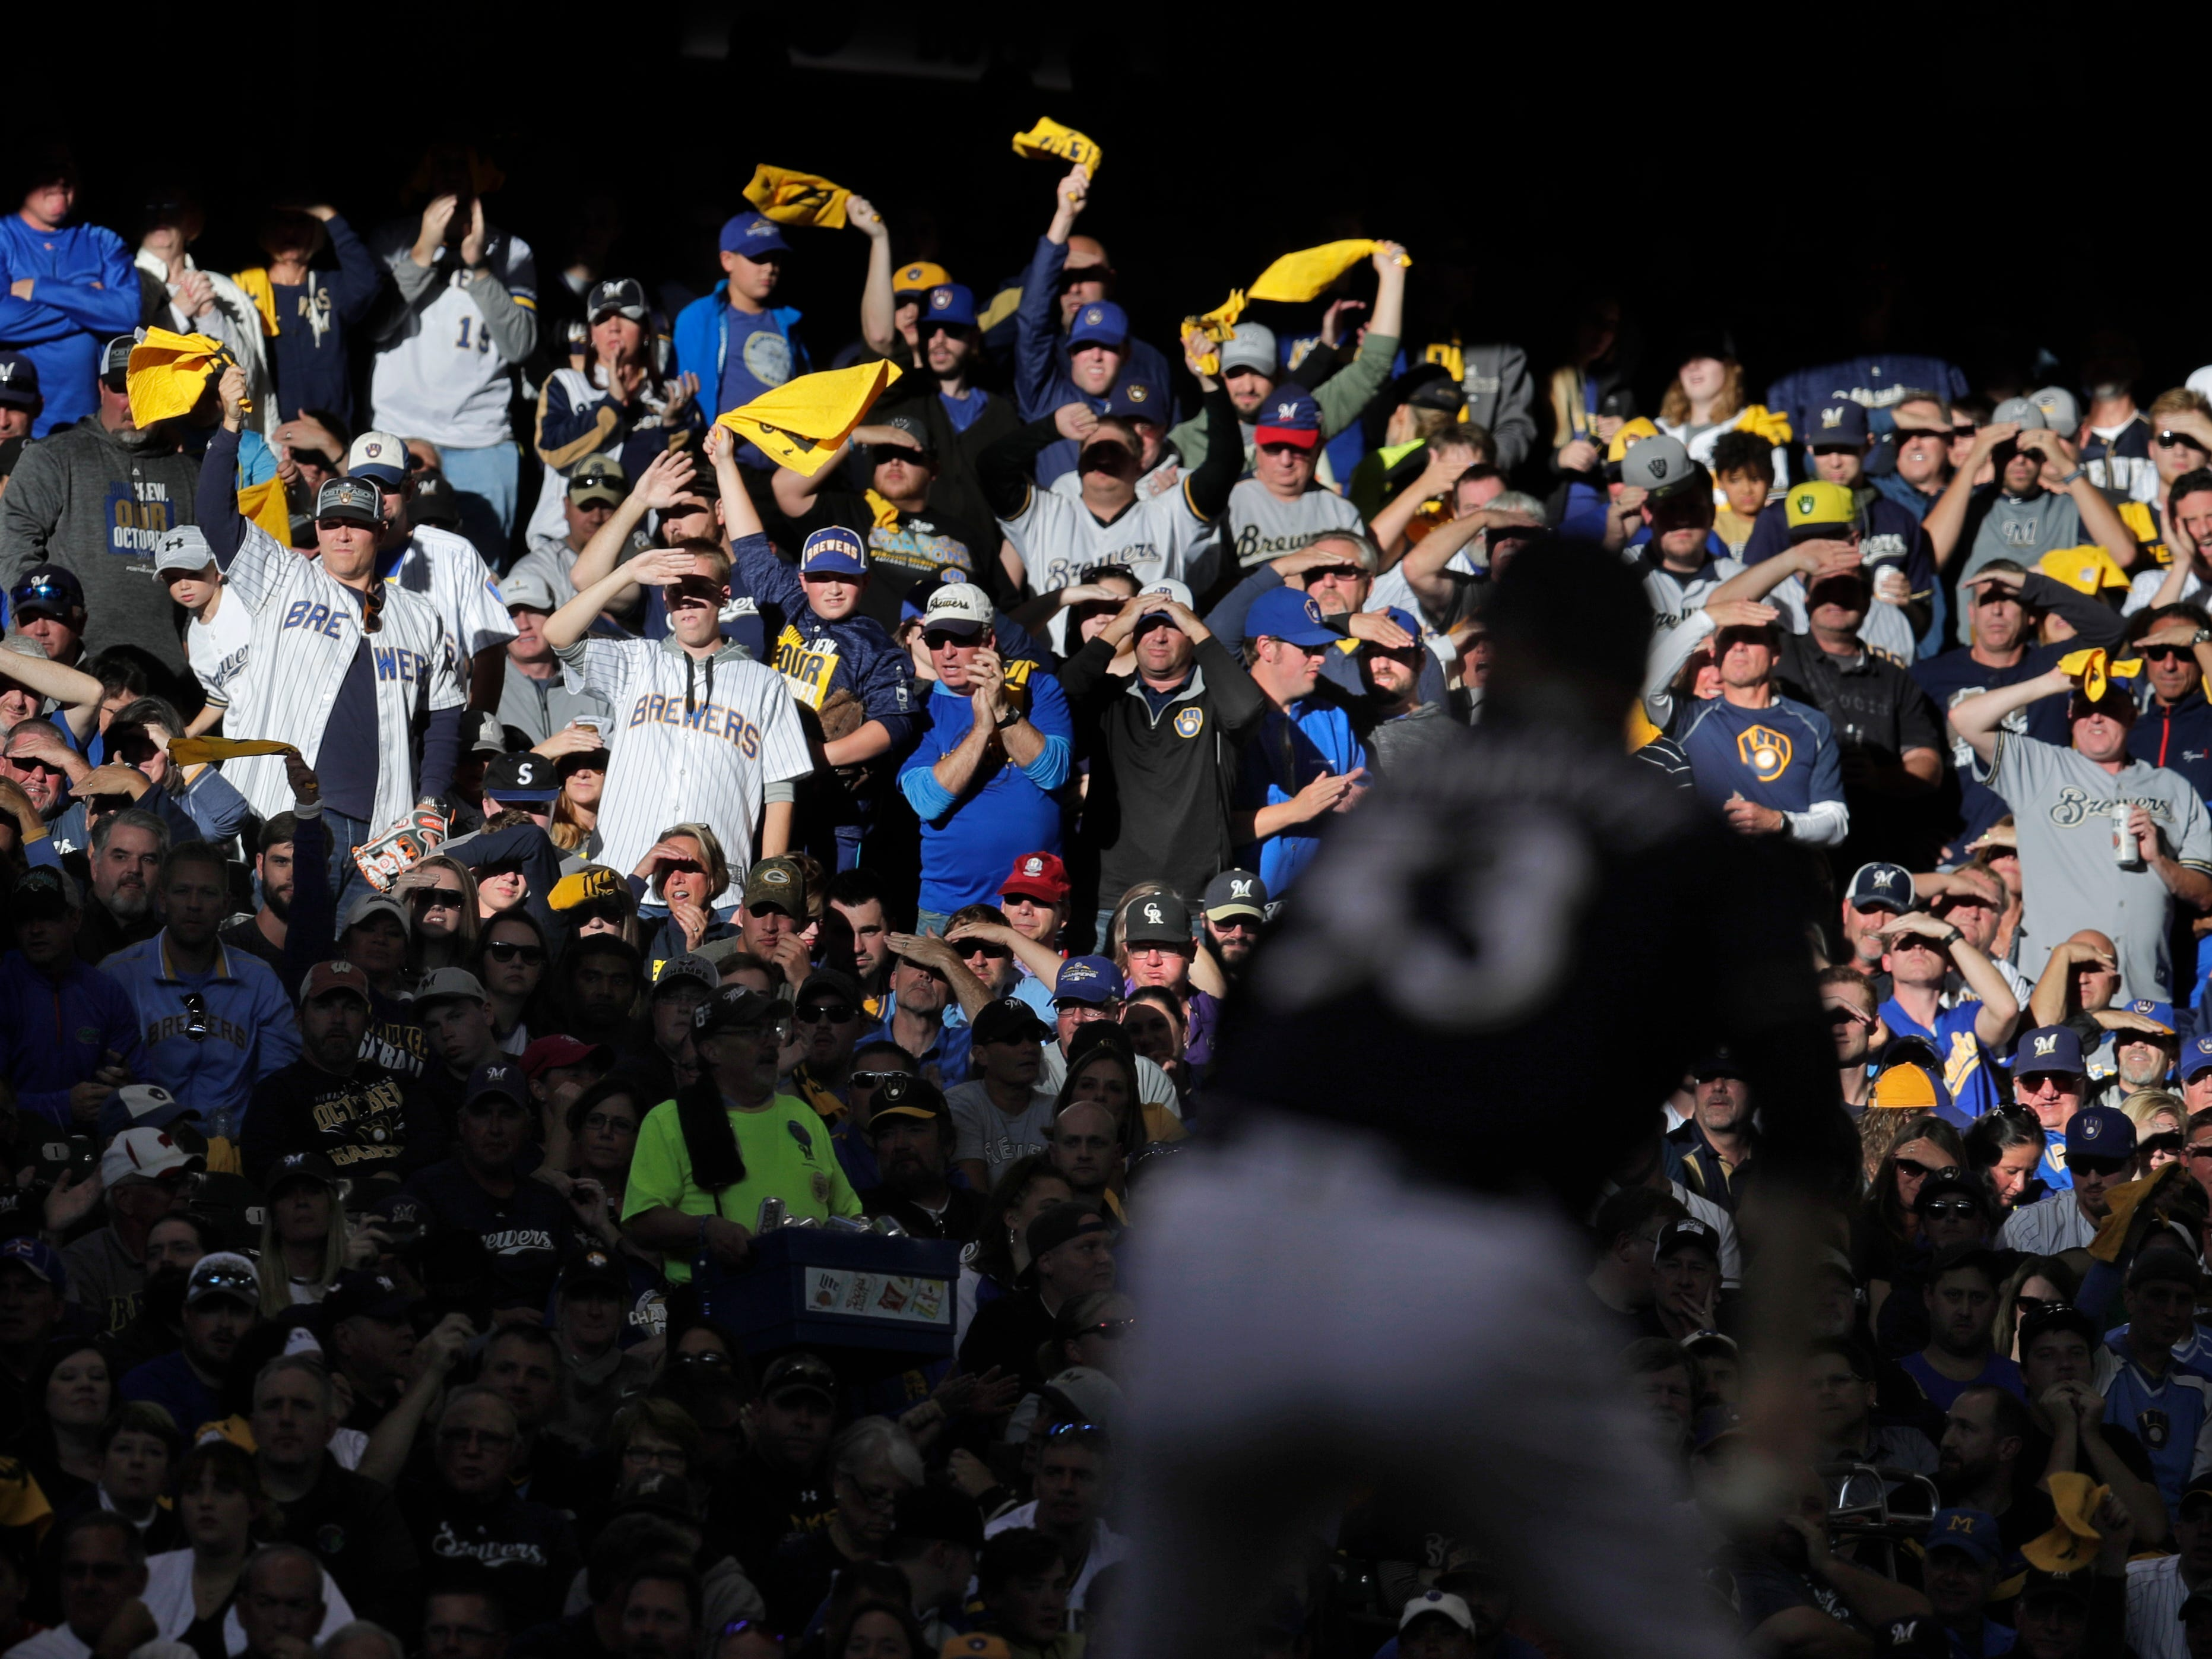 Milwaukee Brewers relief pitcher Brandon Woodruff (53) is cheered by fans in the third inning during Game 1 of the National league Division Series between the Milwaukee Brewers and Colorado Rockies at Miller Park in  Milwaukee on Thursday.